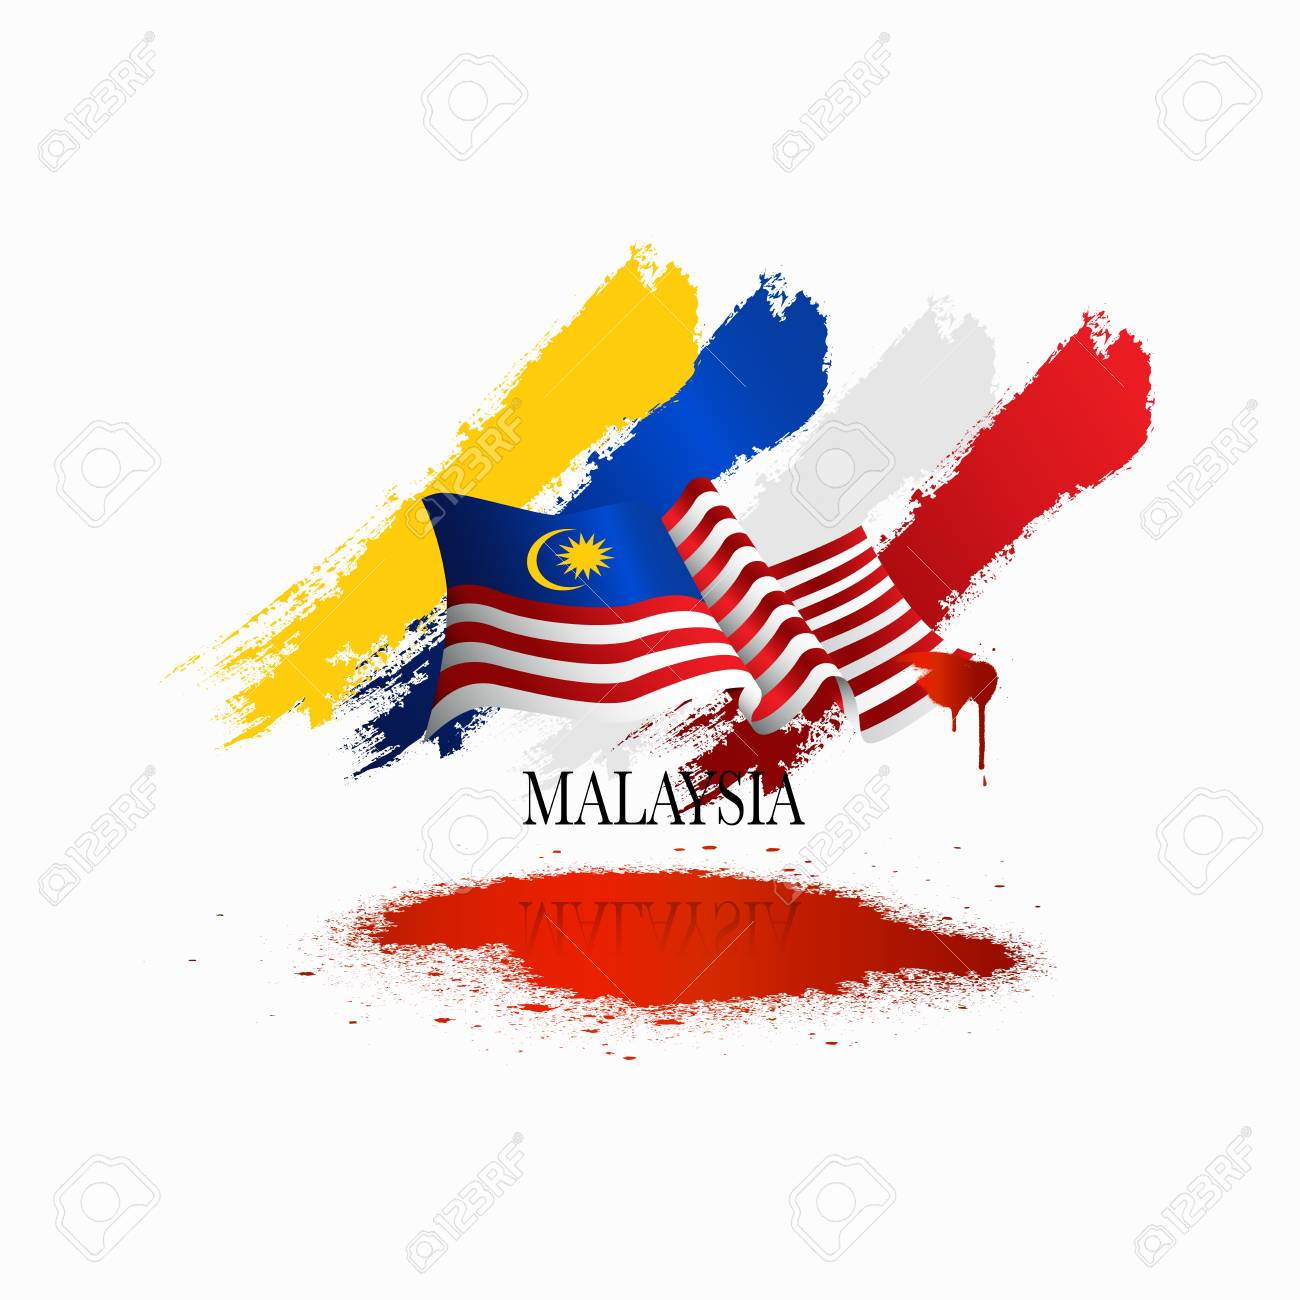 Vector illustration malaysia flag with Malaysia text. Banner or templet for broucher art element. - 105752741